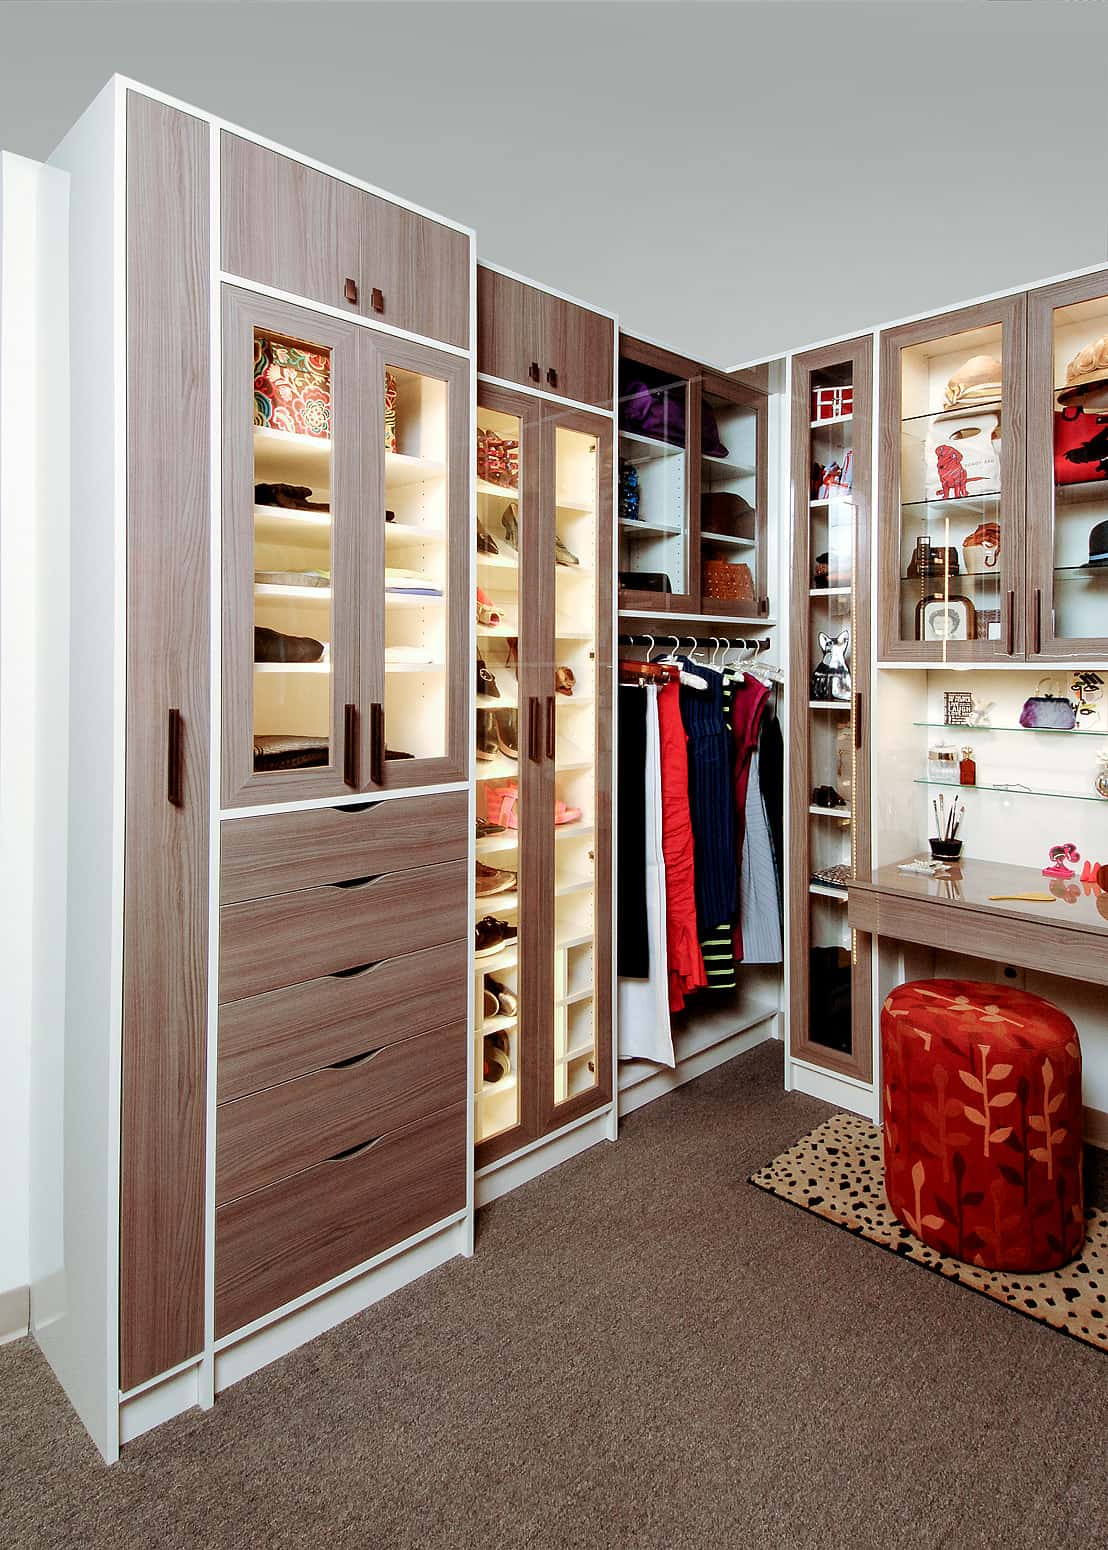 walk-in-closet-storage2018-10-11 at 2.41.22 PM 7